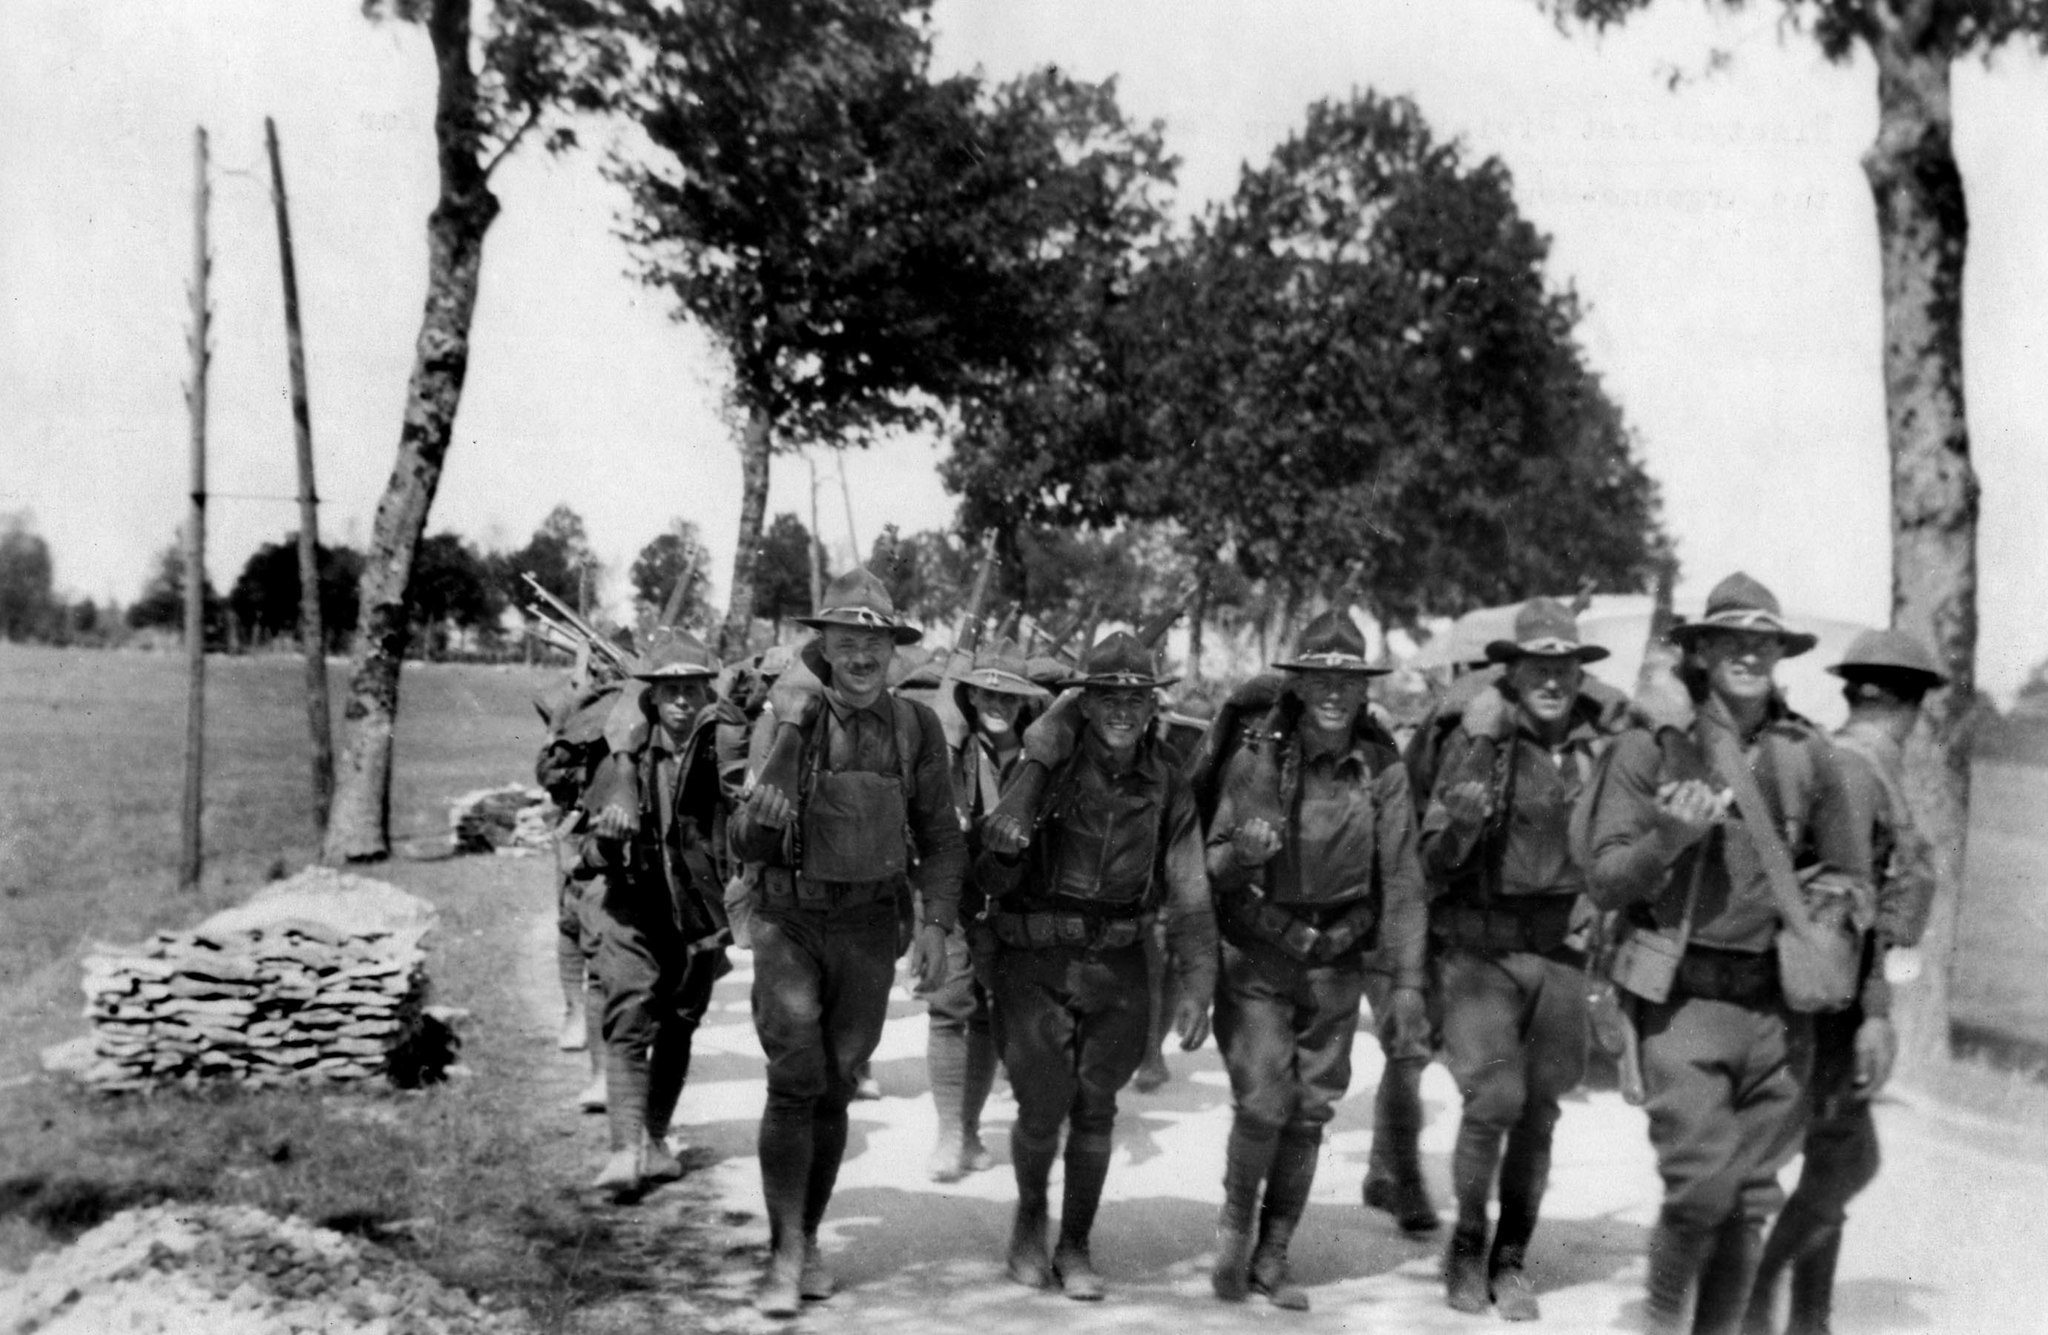 1918: Soldiers with the U.S. Army 91st Infrantry Division advance to their positions in the line for